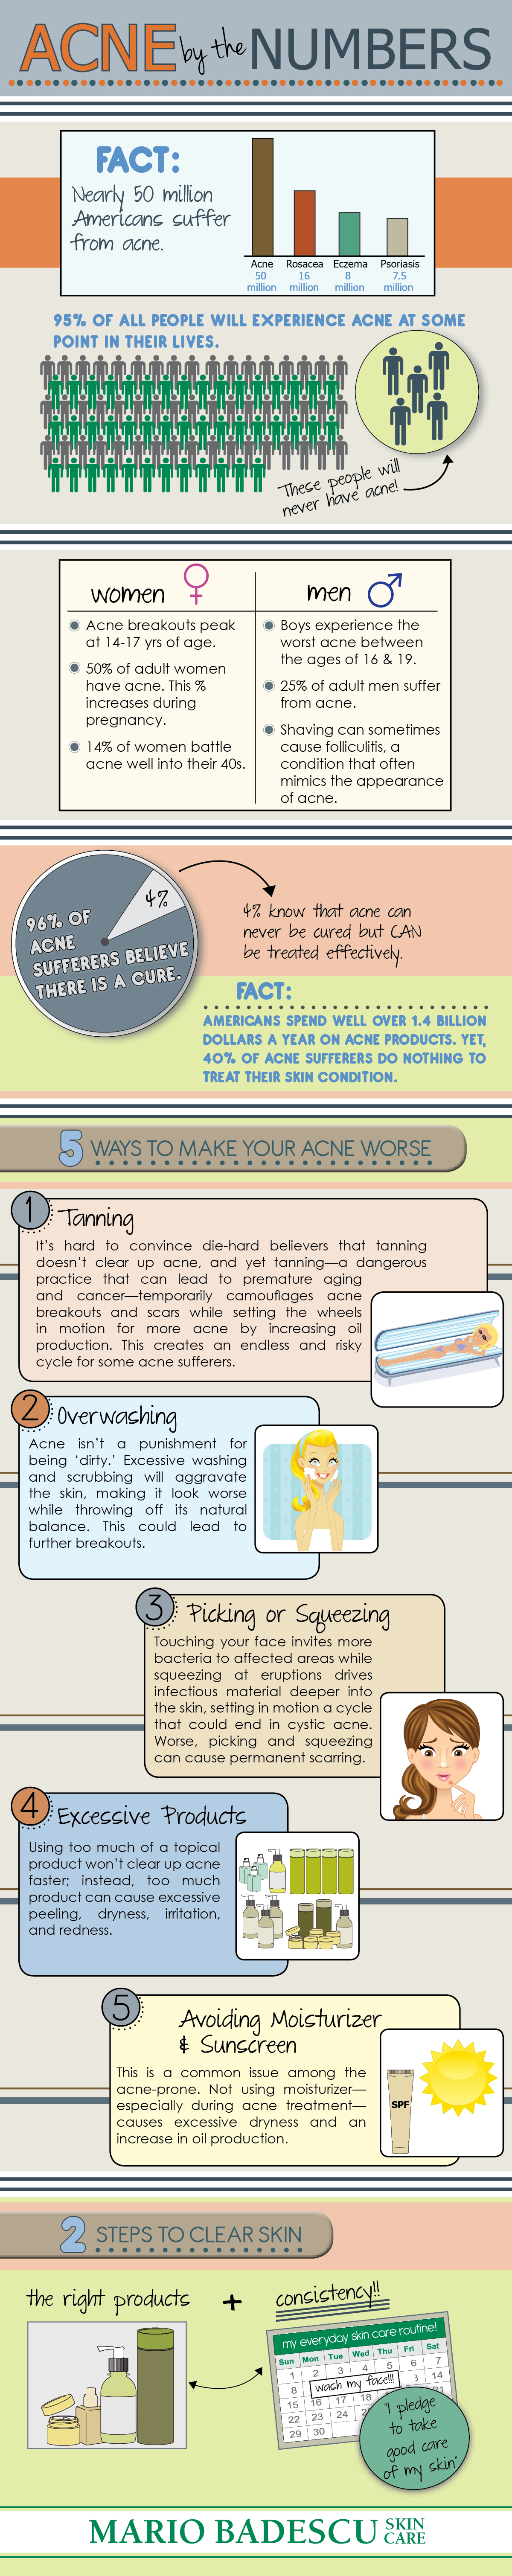 Acne By The Numbers - an acne statistics infographic